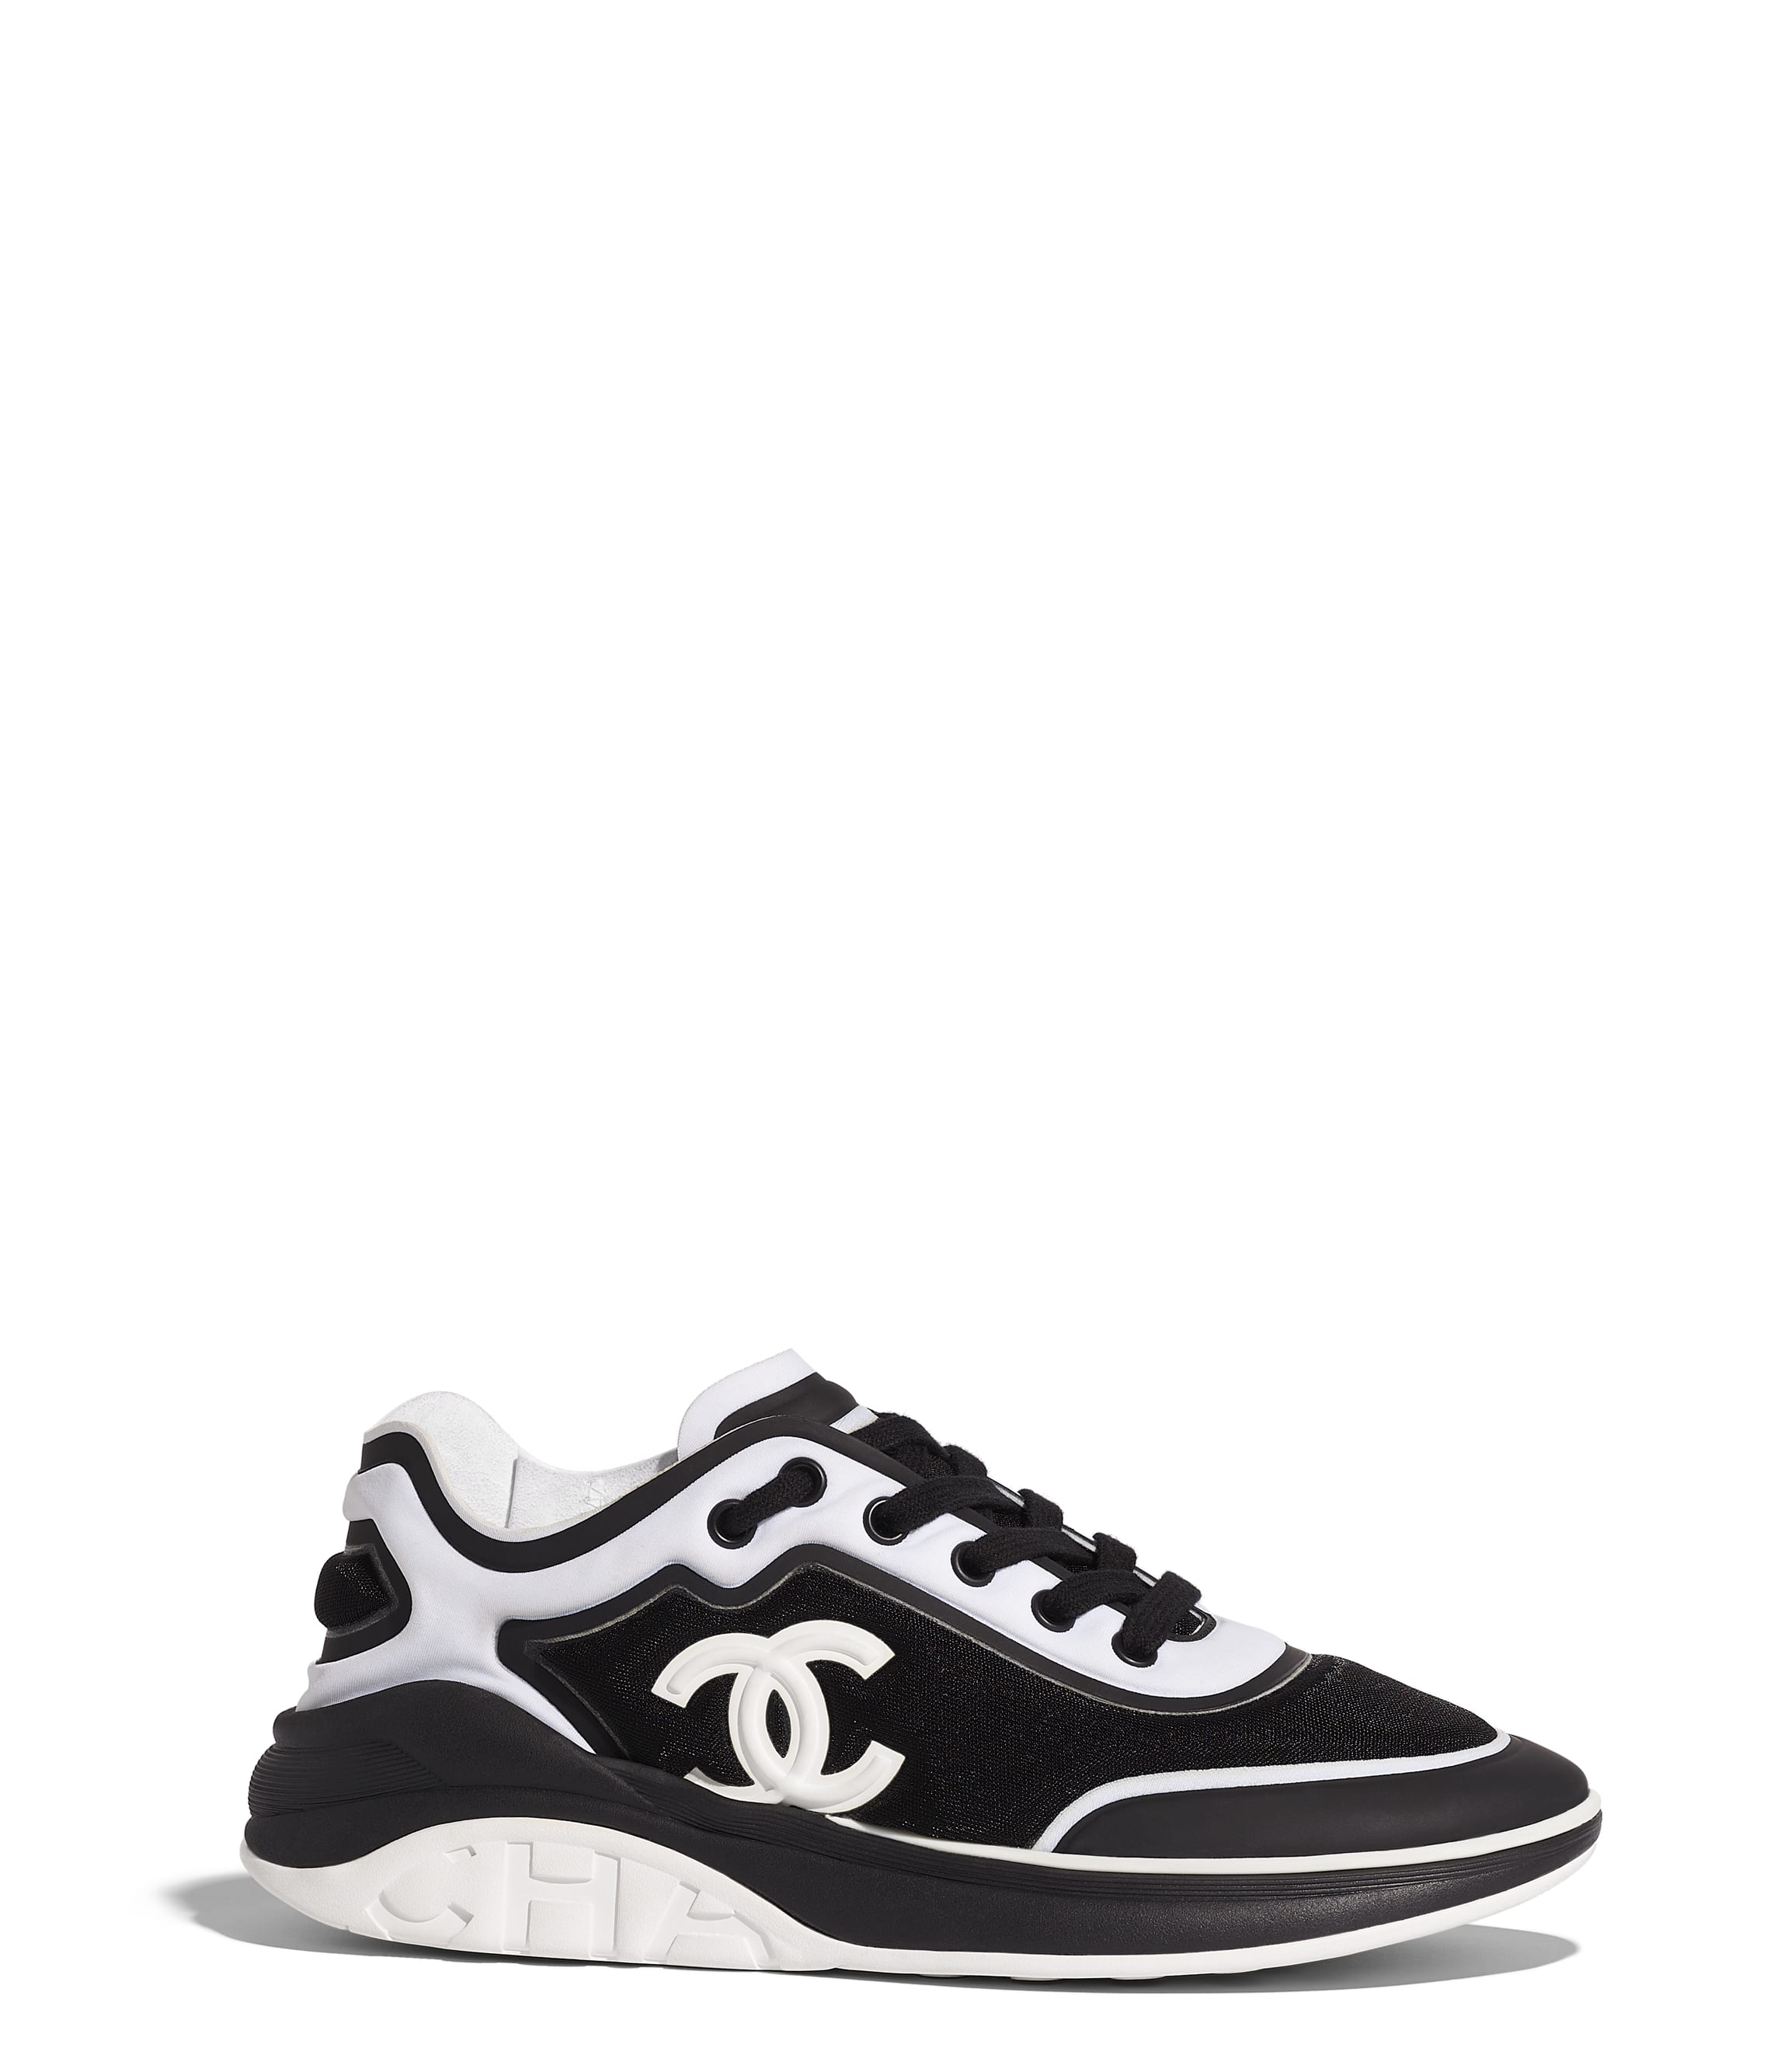 447053352f0 Sneakers - Shoes - CHANEL